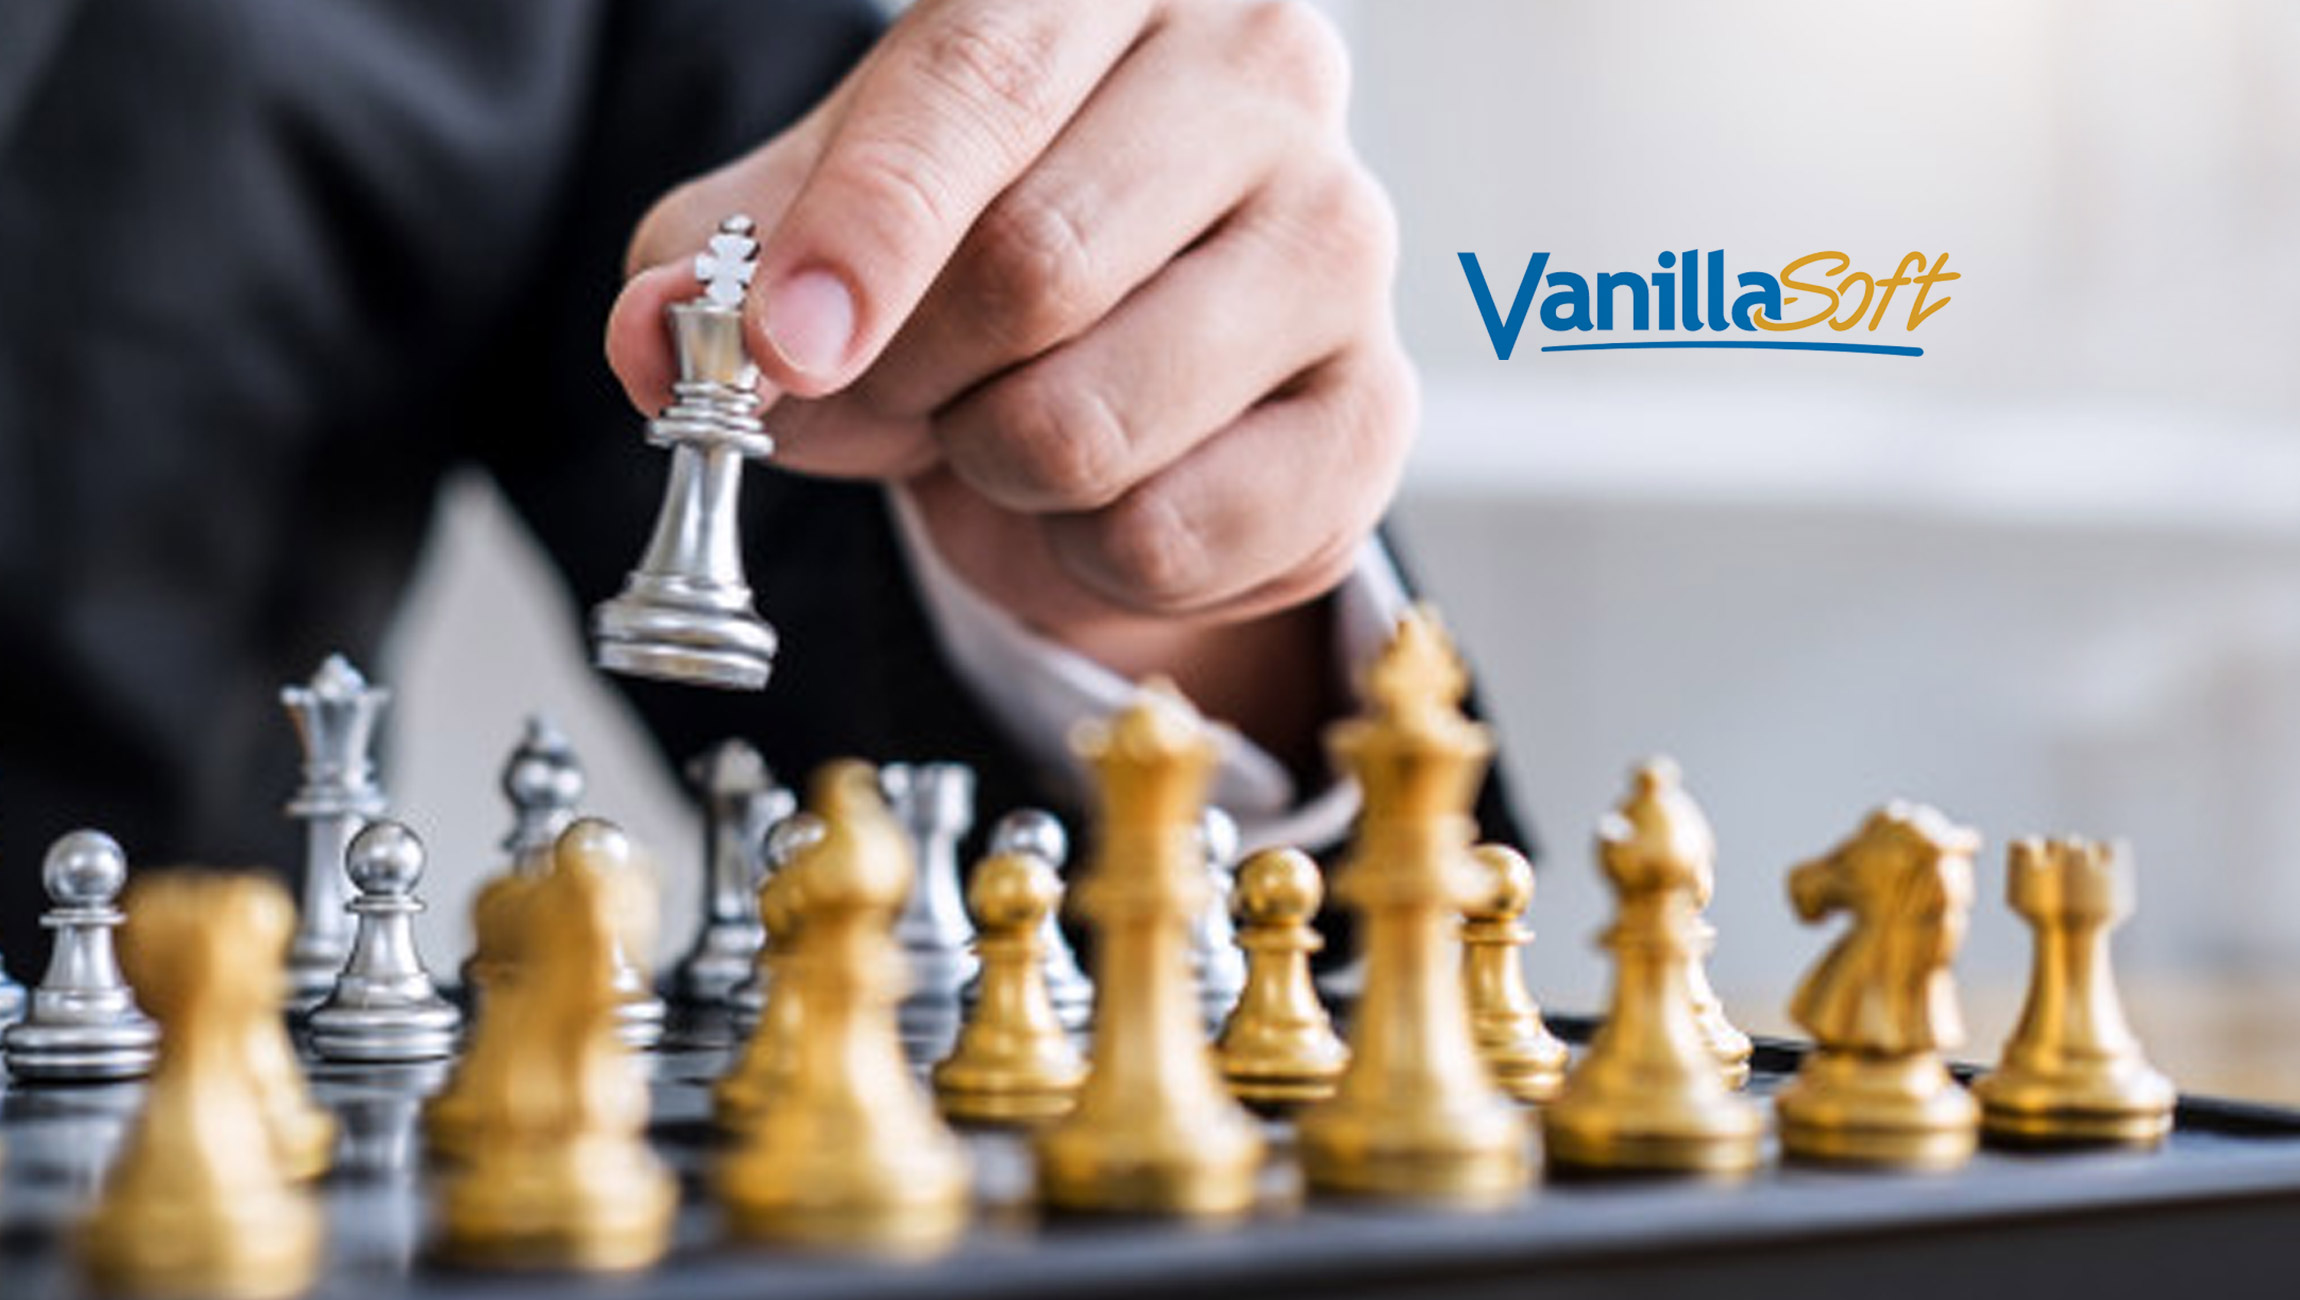 VanillaSoft Named a Contender in Independent Analyst Report, Sales Engagement, Q3 2020Recognized as Service Provider of the Year at 2019 AA-ISP Leadership Summit